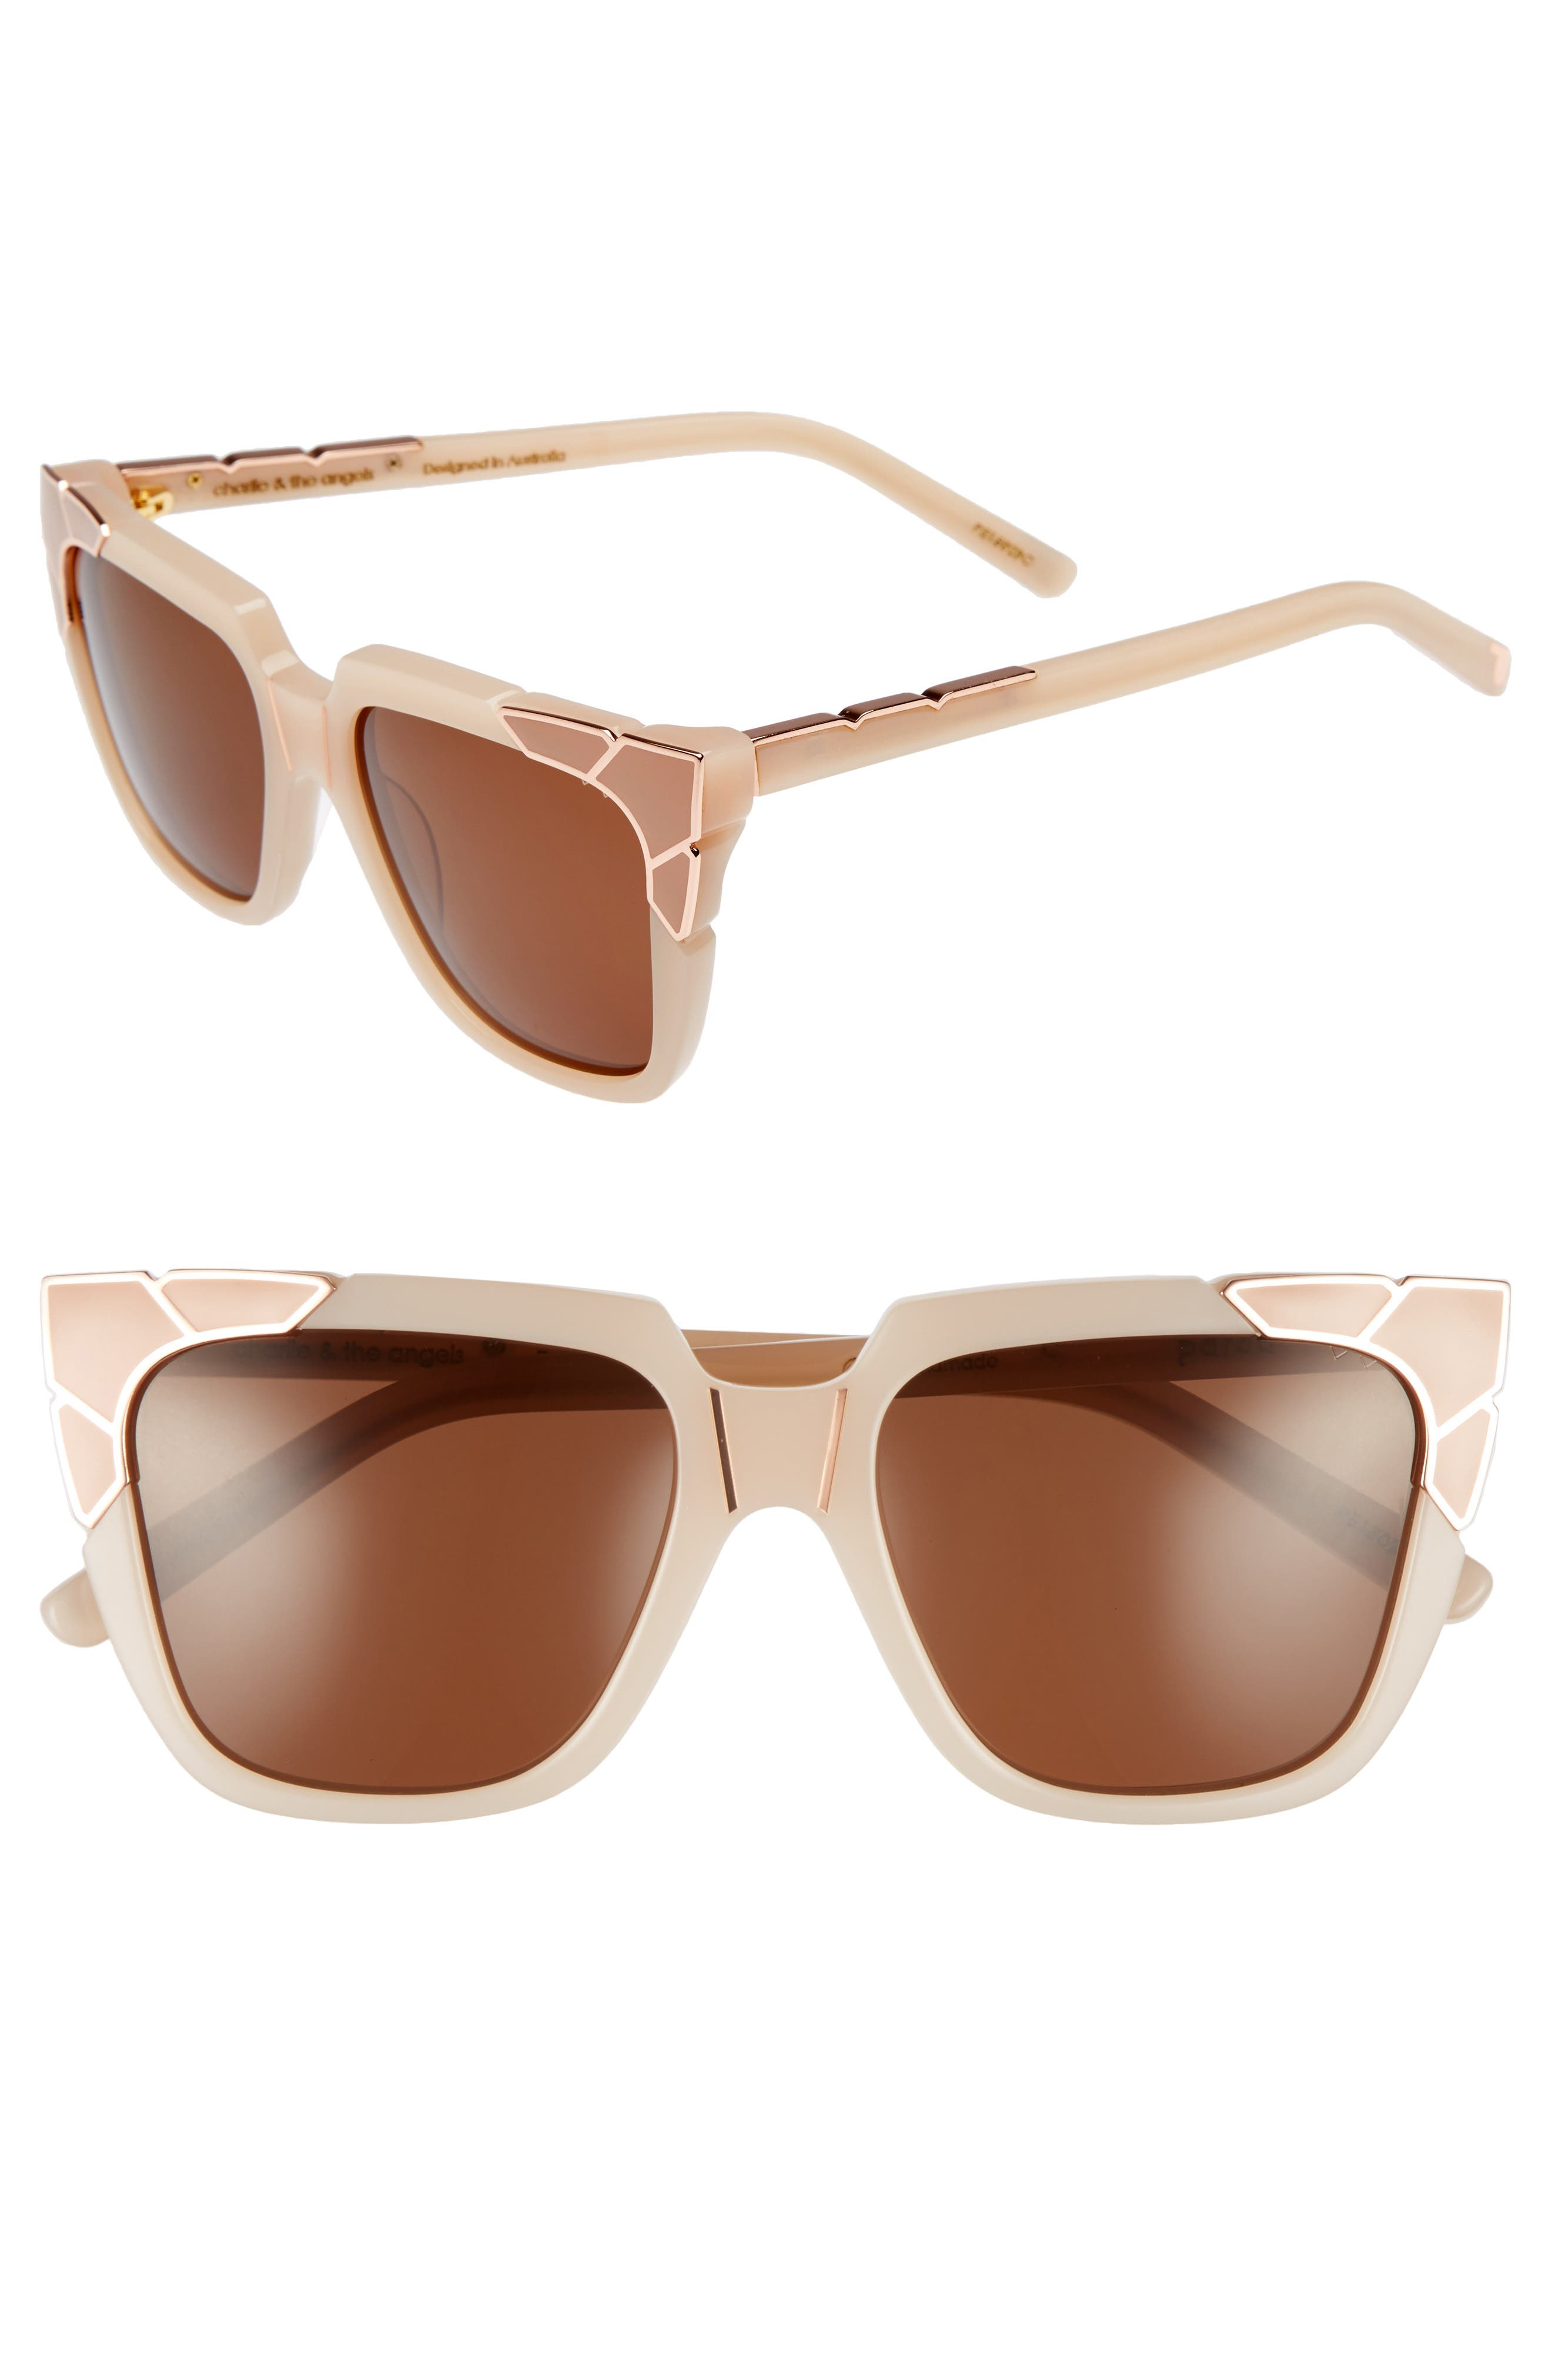 Charlie & the Angels 54mm Sunglasses,                             Main thumbnail 1, color,                             Blush/ Rose Gold/ Blush Brown